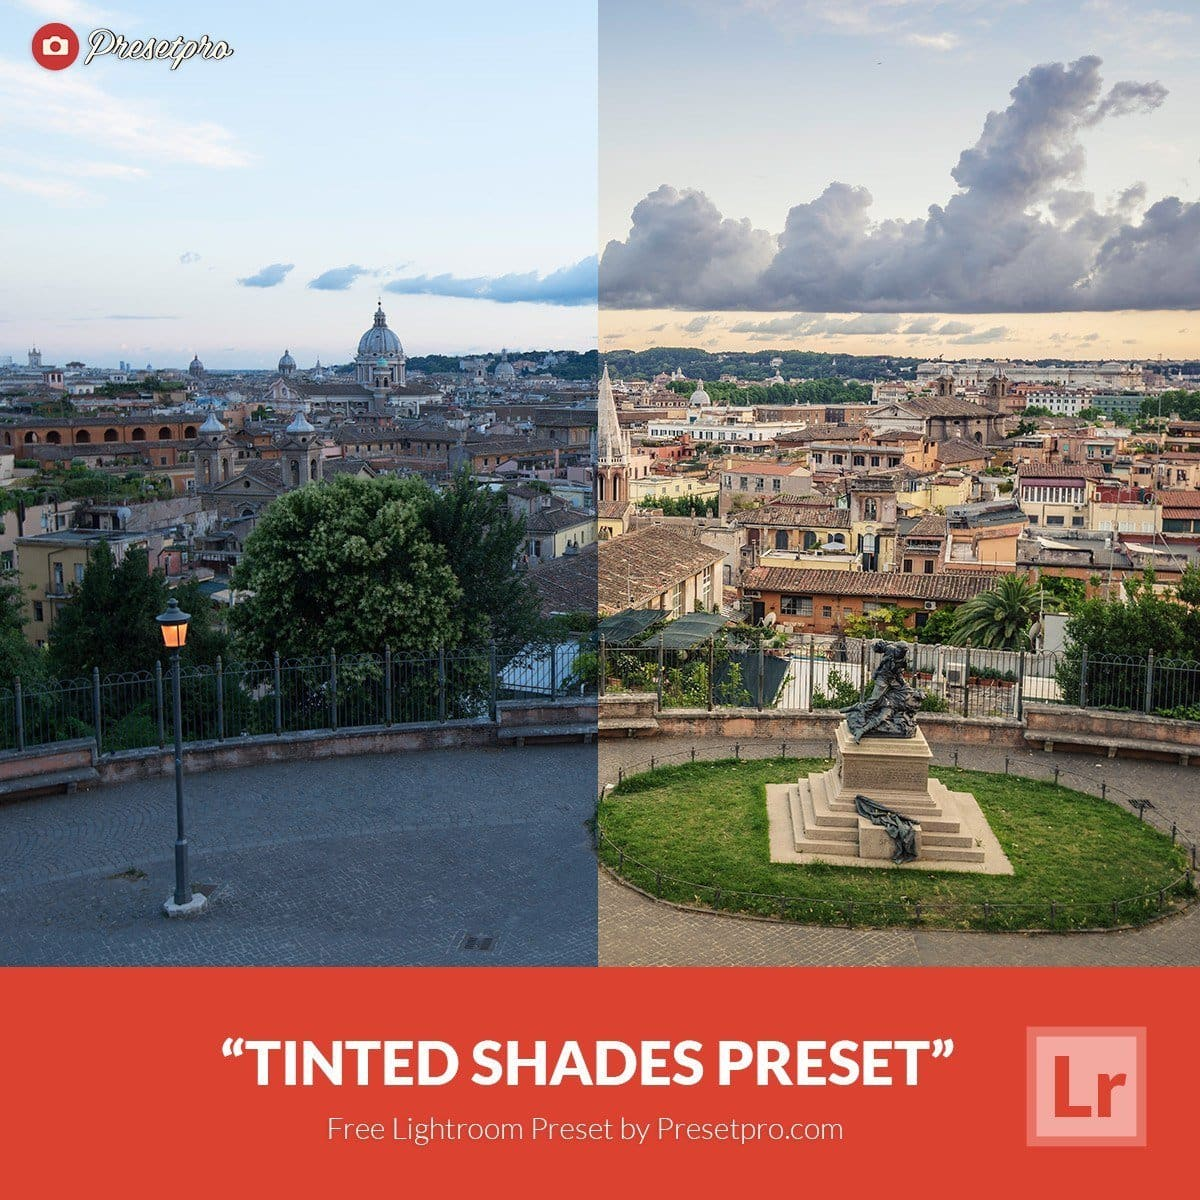 Free-Lightroom-Preset-Tinted-Shades